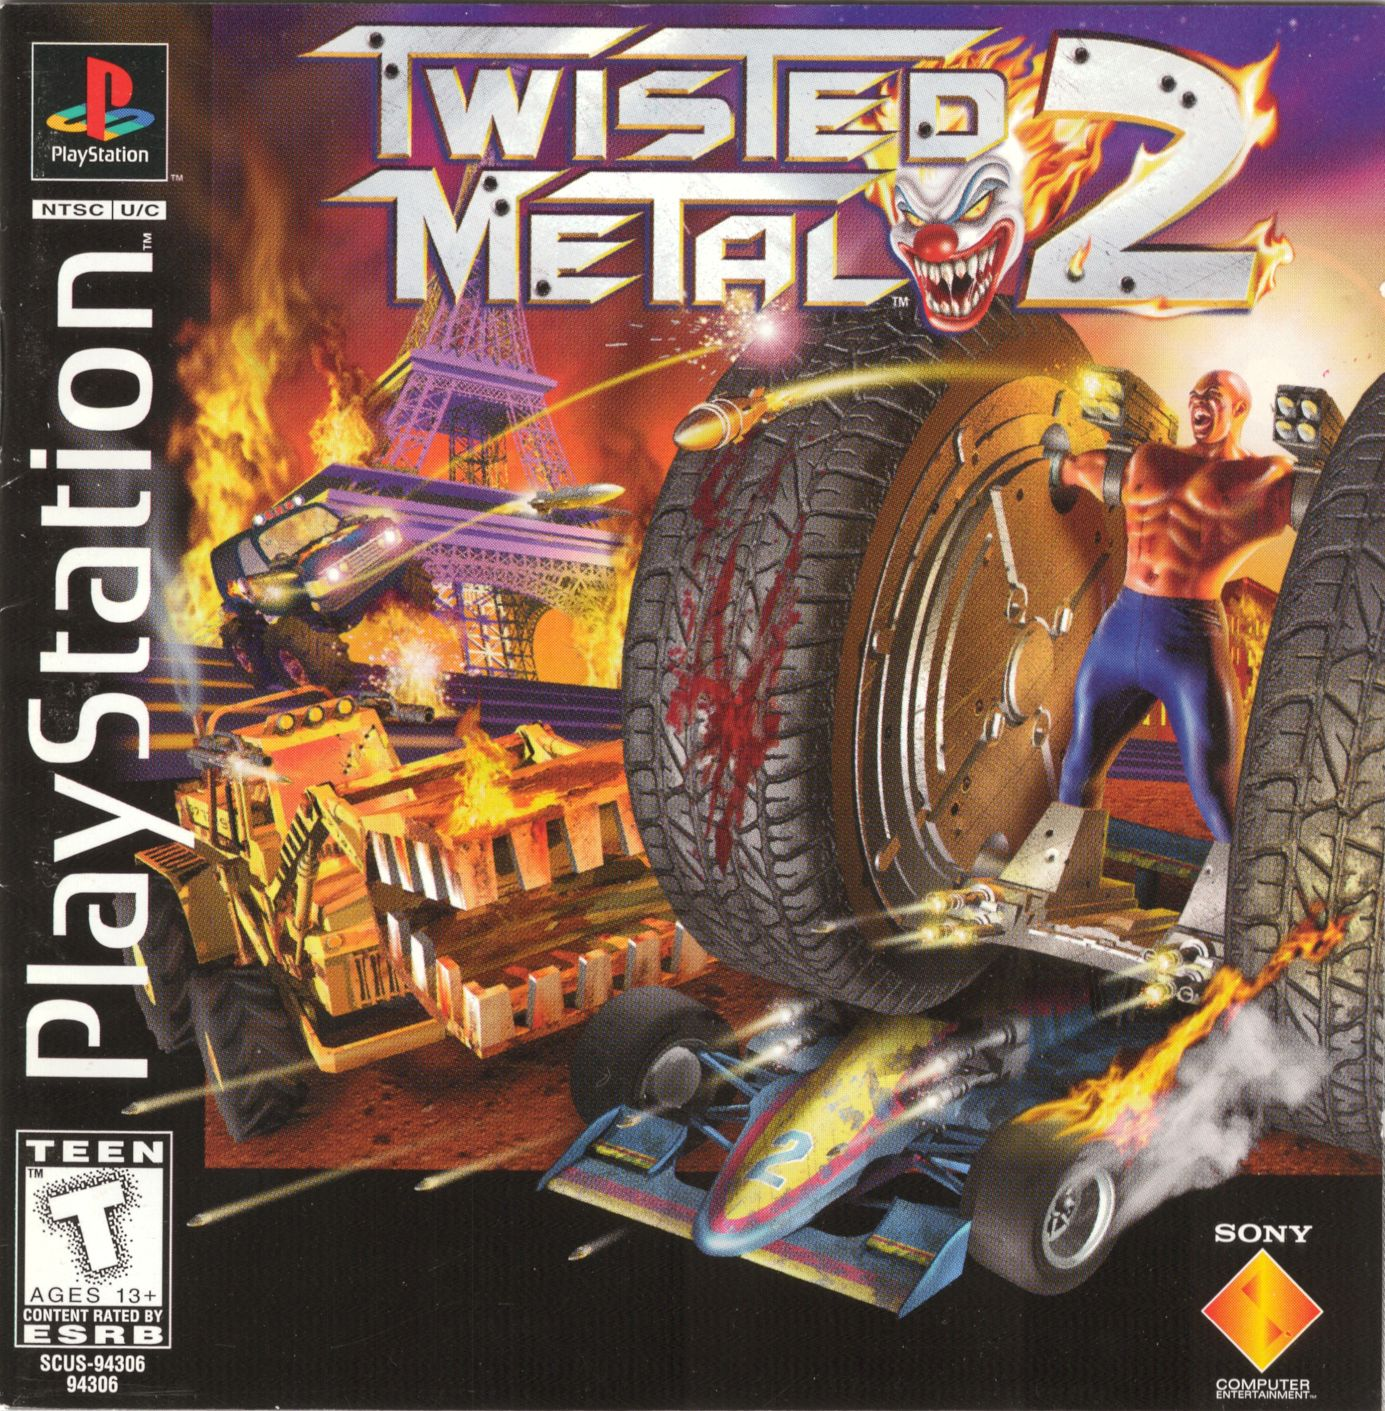 Twisted Metal 2 [SCUS-94306] Bin